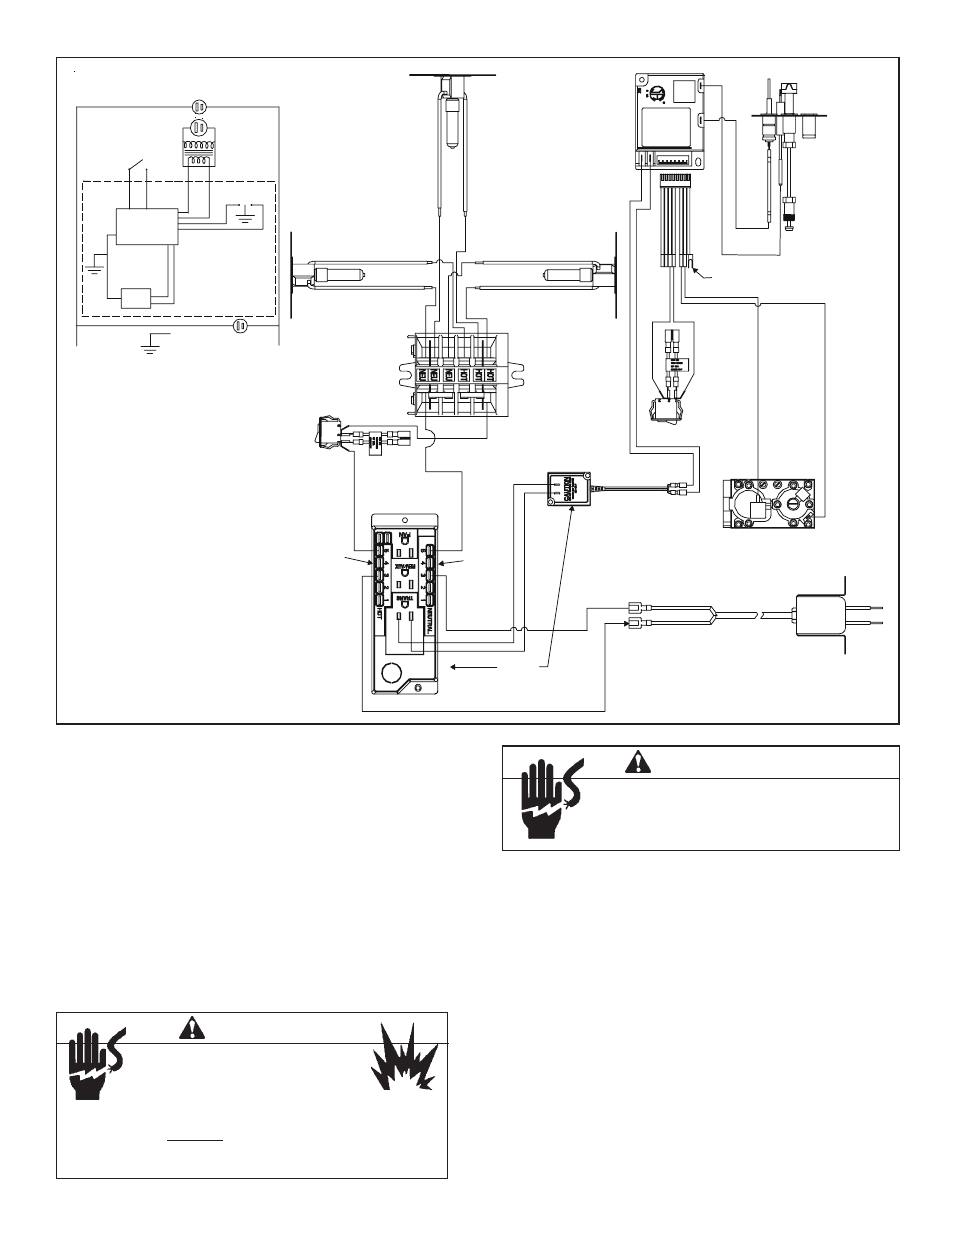 Warning Step 8 Wiring The Fireplace For Intermittent Pilot Socket Junction Box Ignition Heat Glo Lcor Hv Ipi User Manual Page 37 46